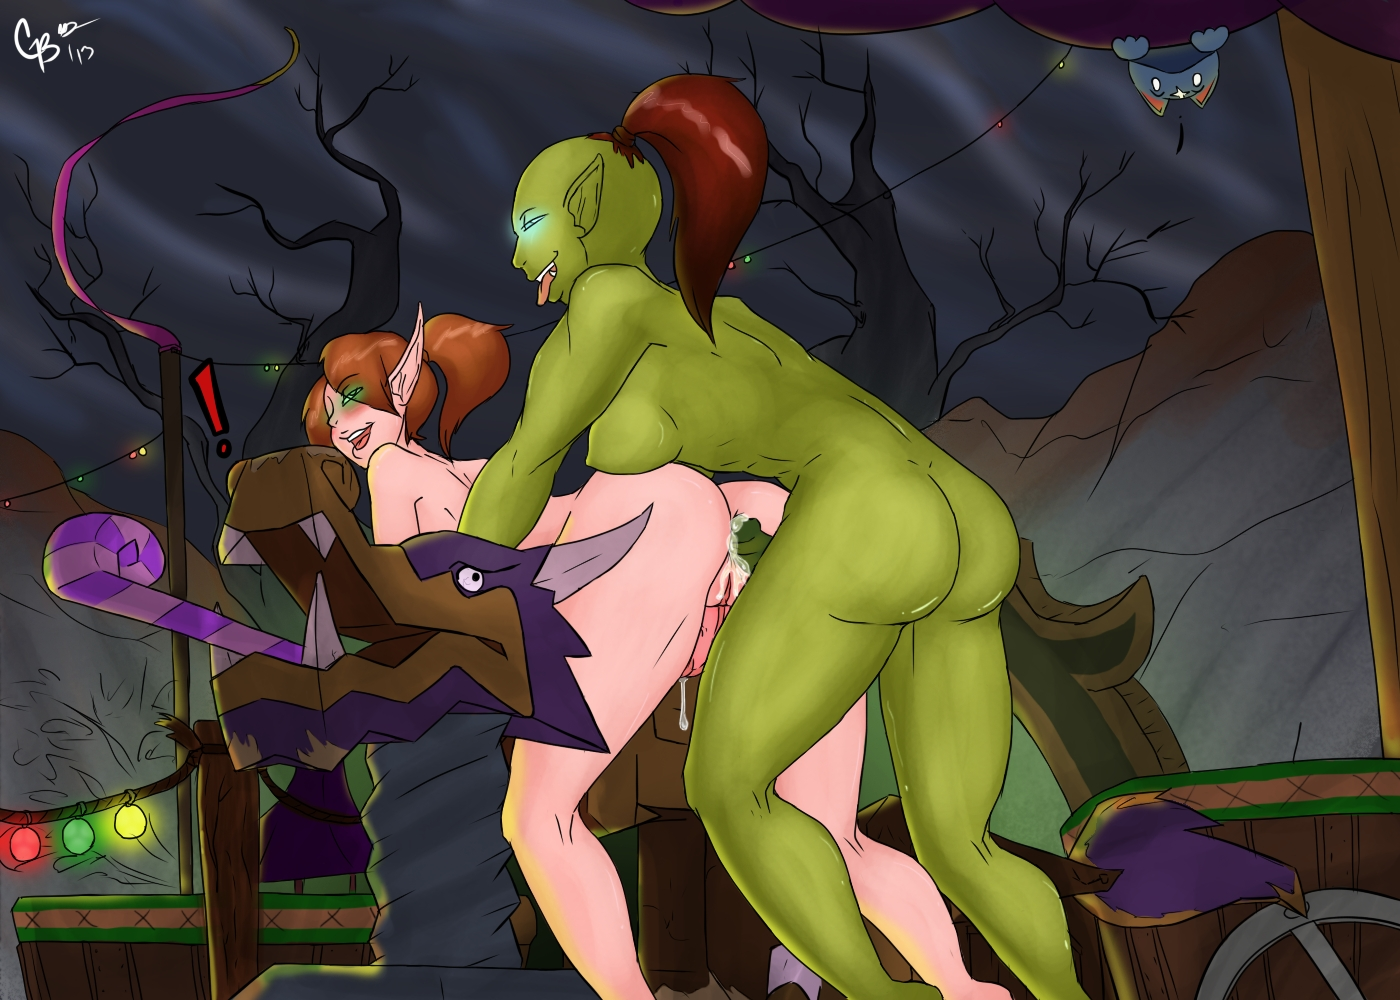 Orc and an elf sex porncraft image